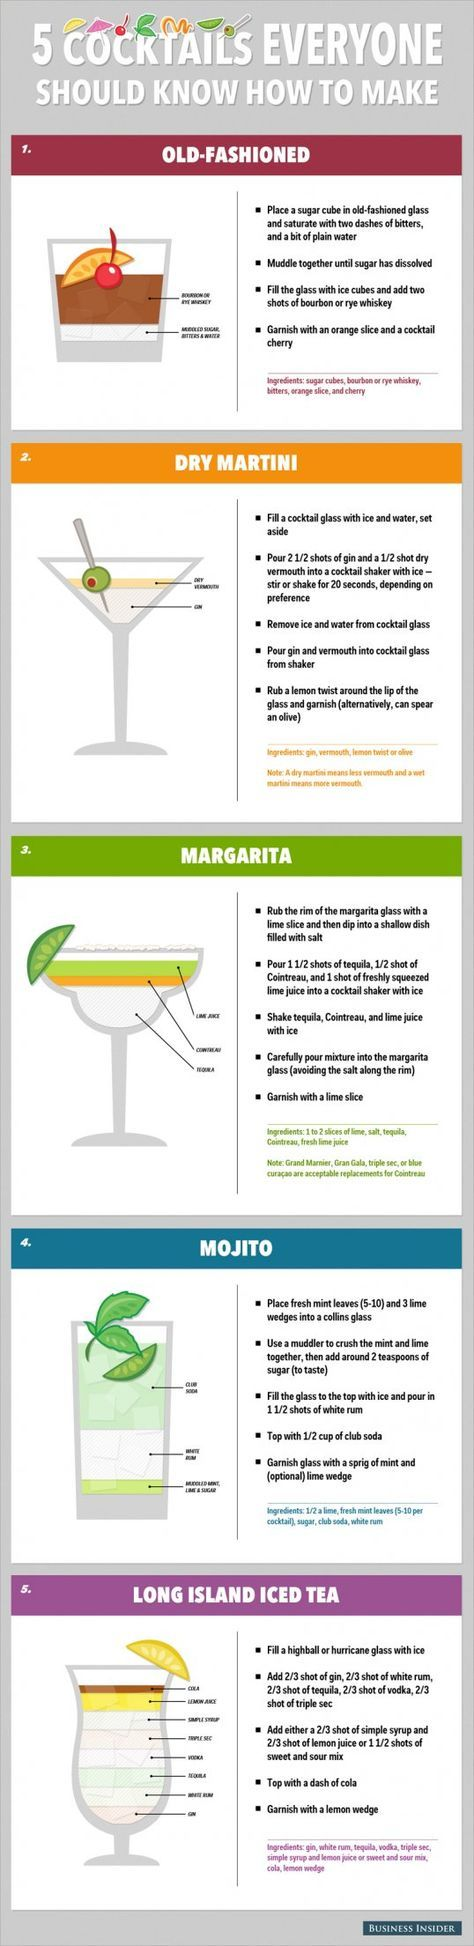 5 classic cocktails everyone should learn to make